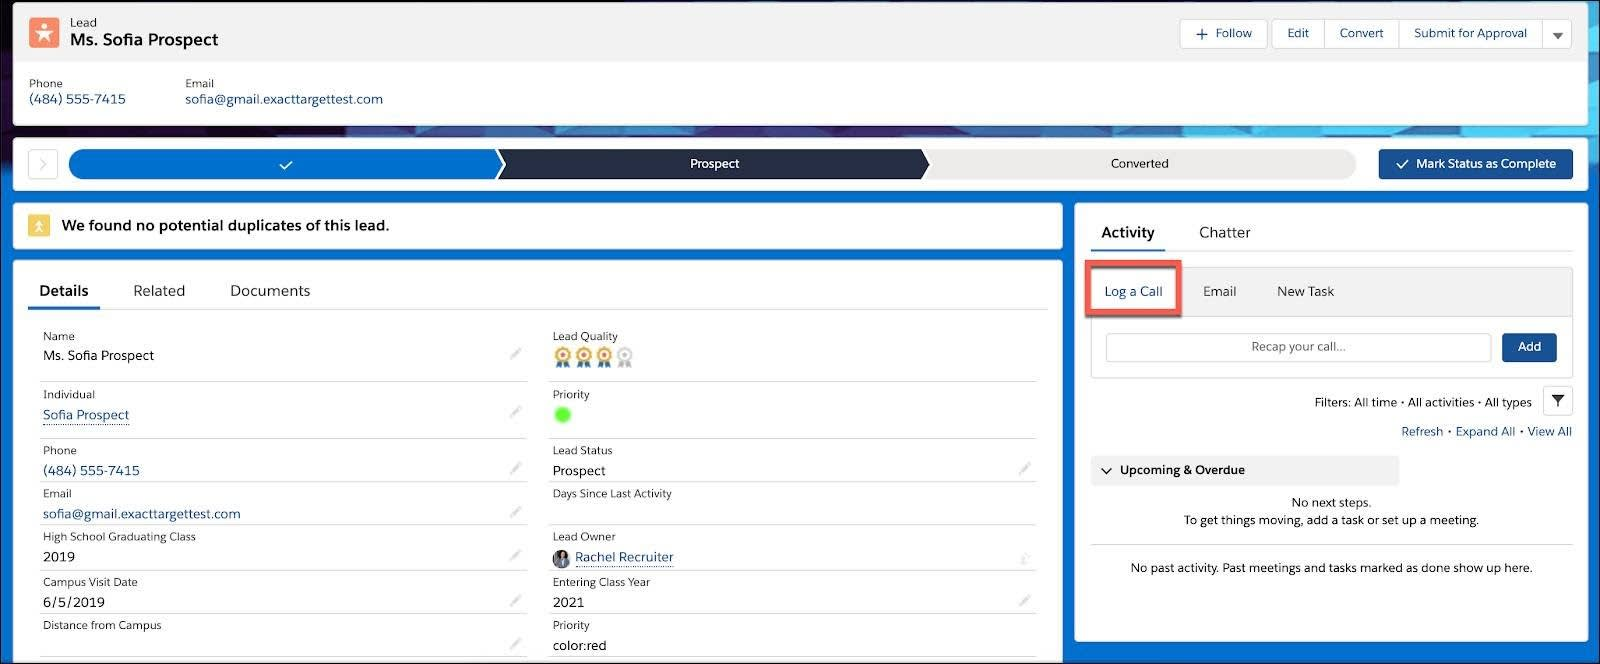 On the Contact record for a prospective student, the Log a Call button is highlighted under the Activity tab.